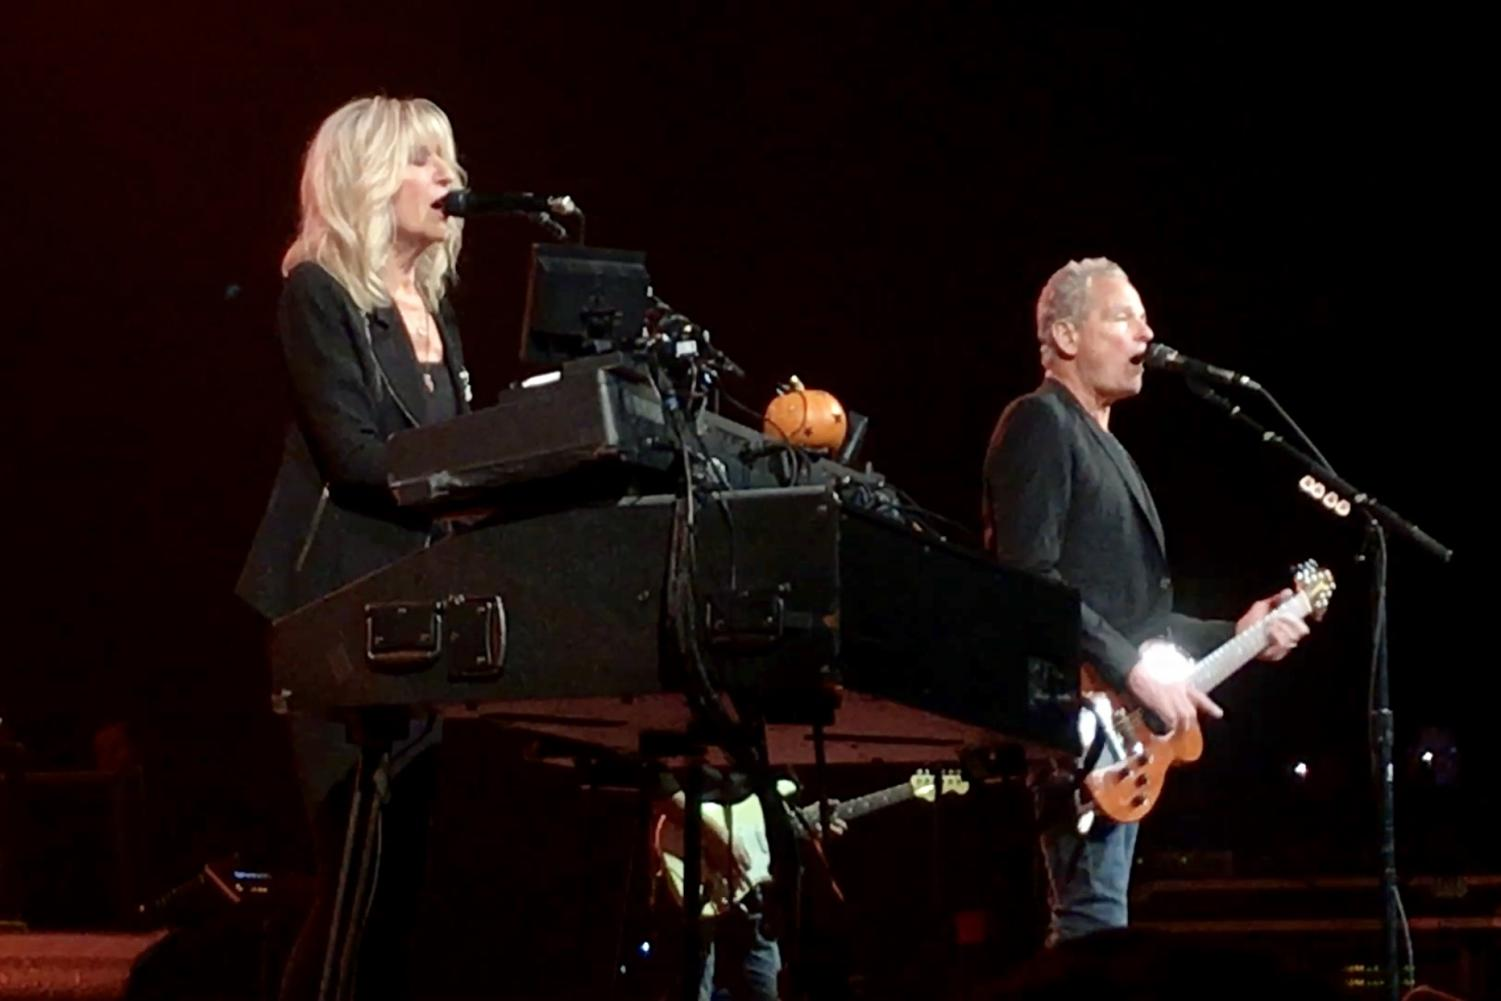 Christine McVie (left) and Lindsey Buckingham (right) on stage in Milwaukee. Photo by Helen Dudley